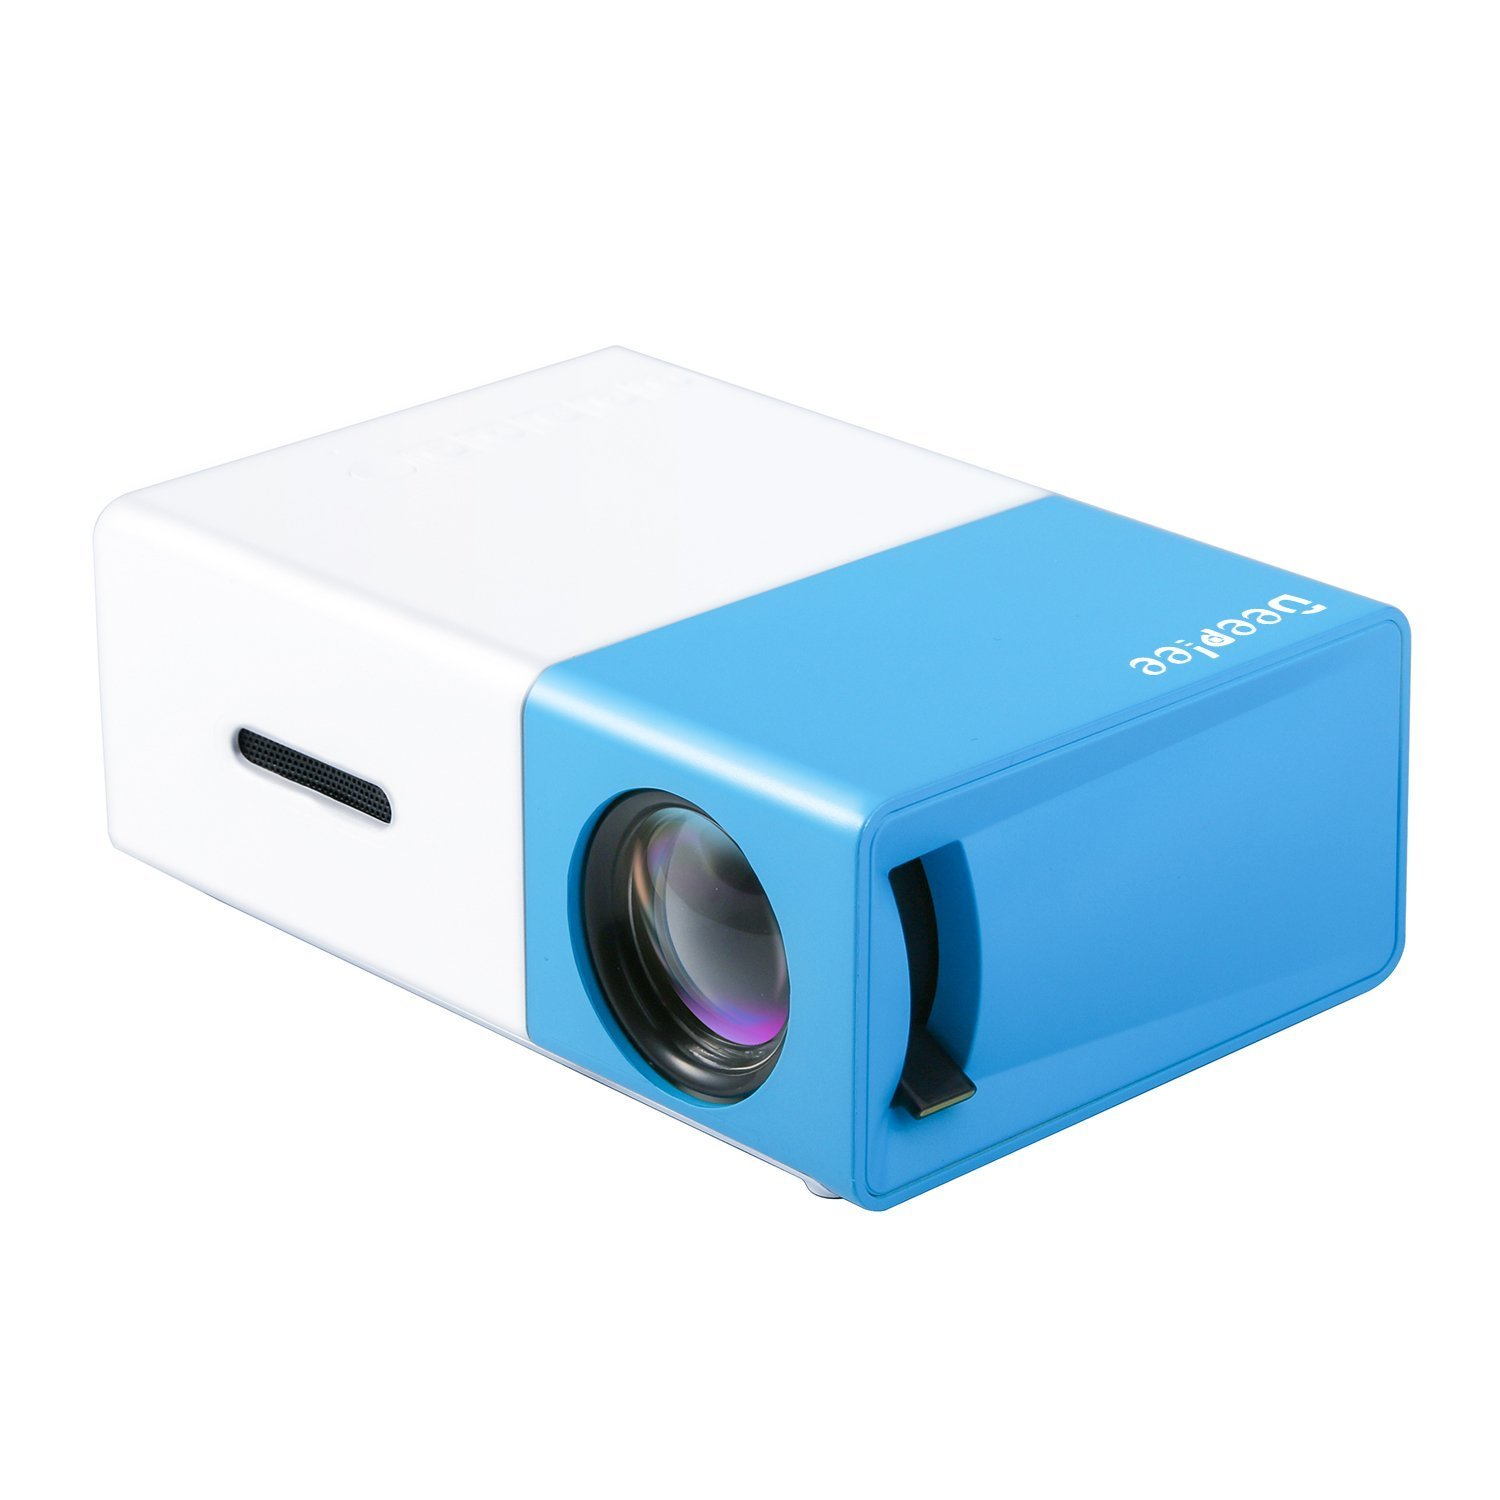 Deeplee Mini Projector, Portable LED Projector Home: Amazon.co.uk ...